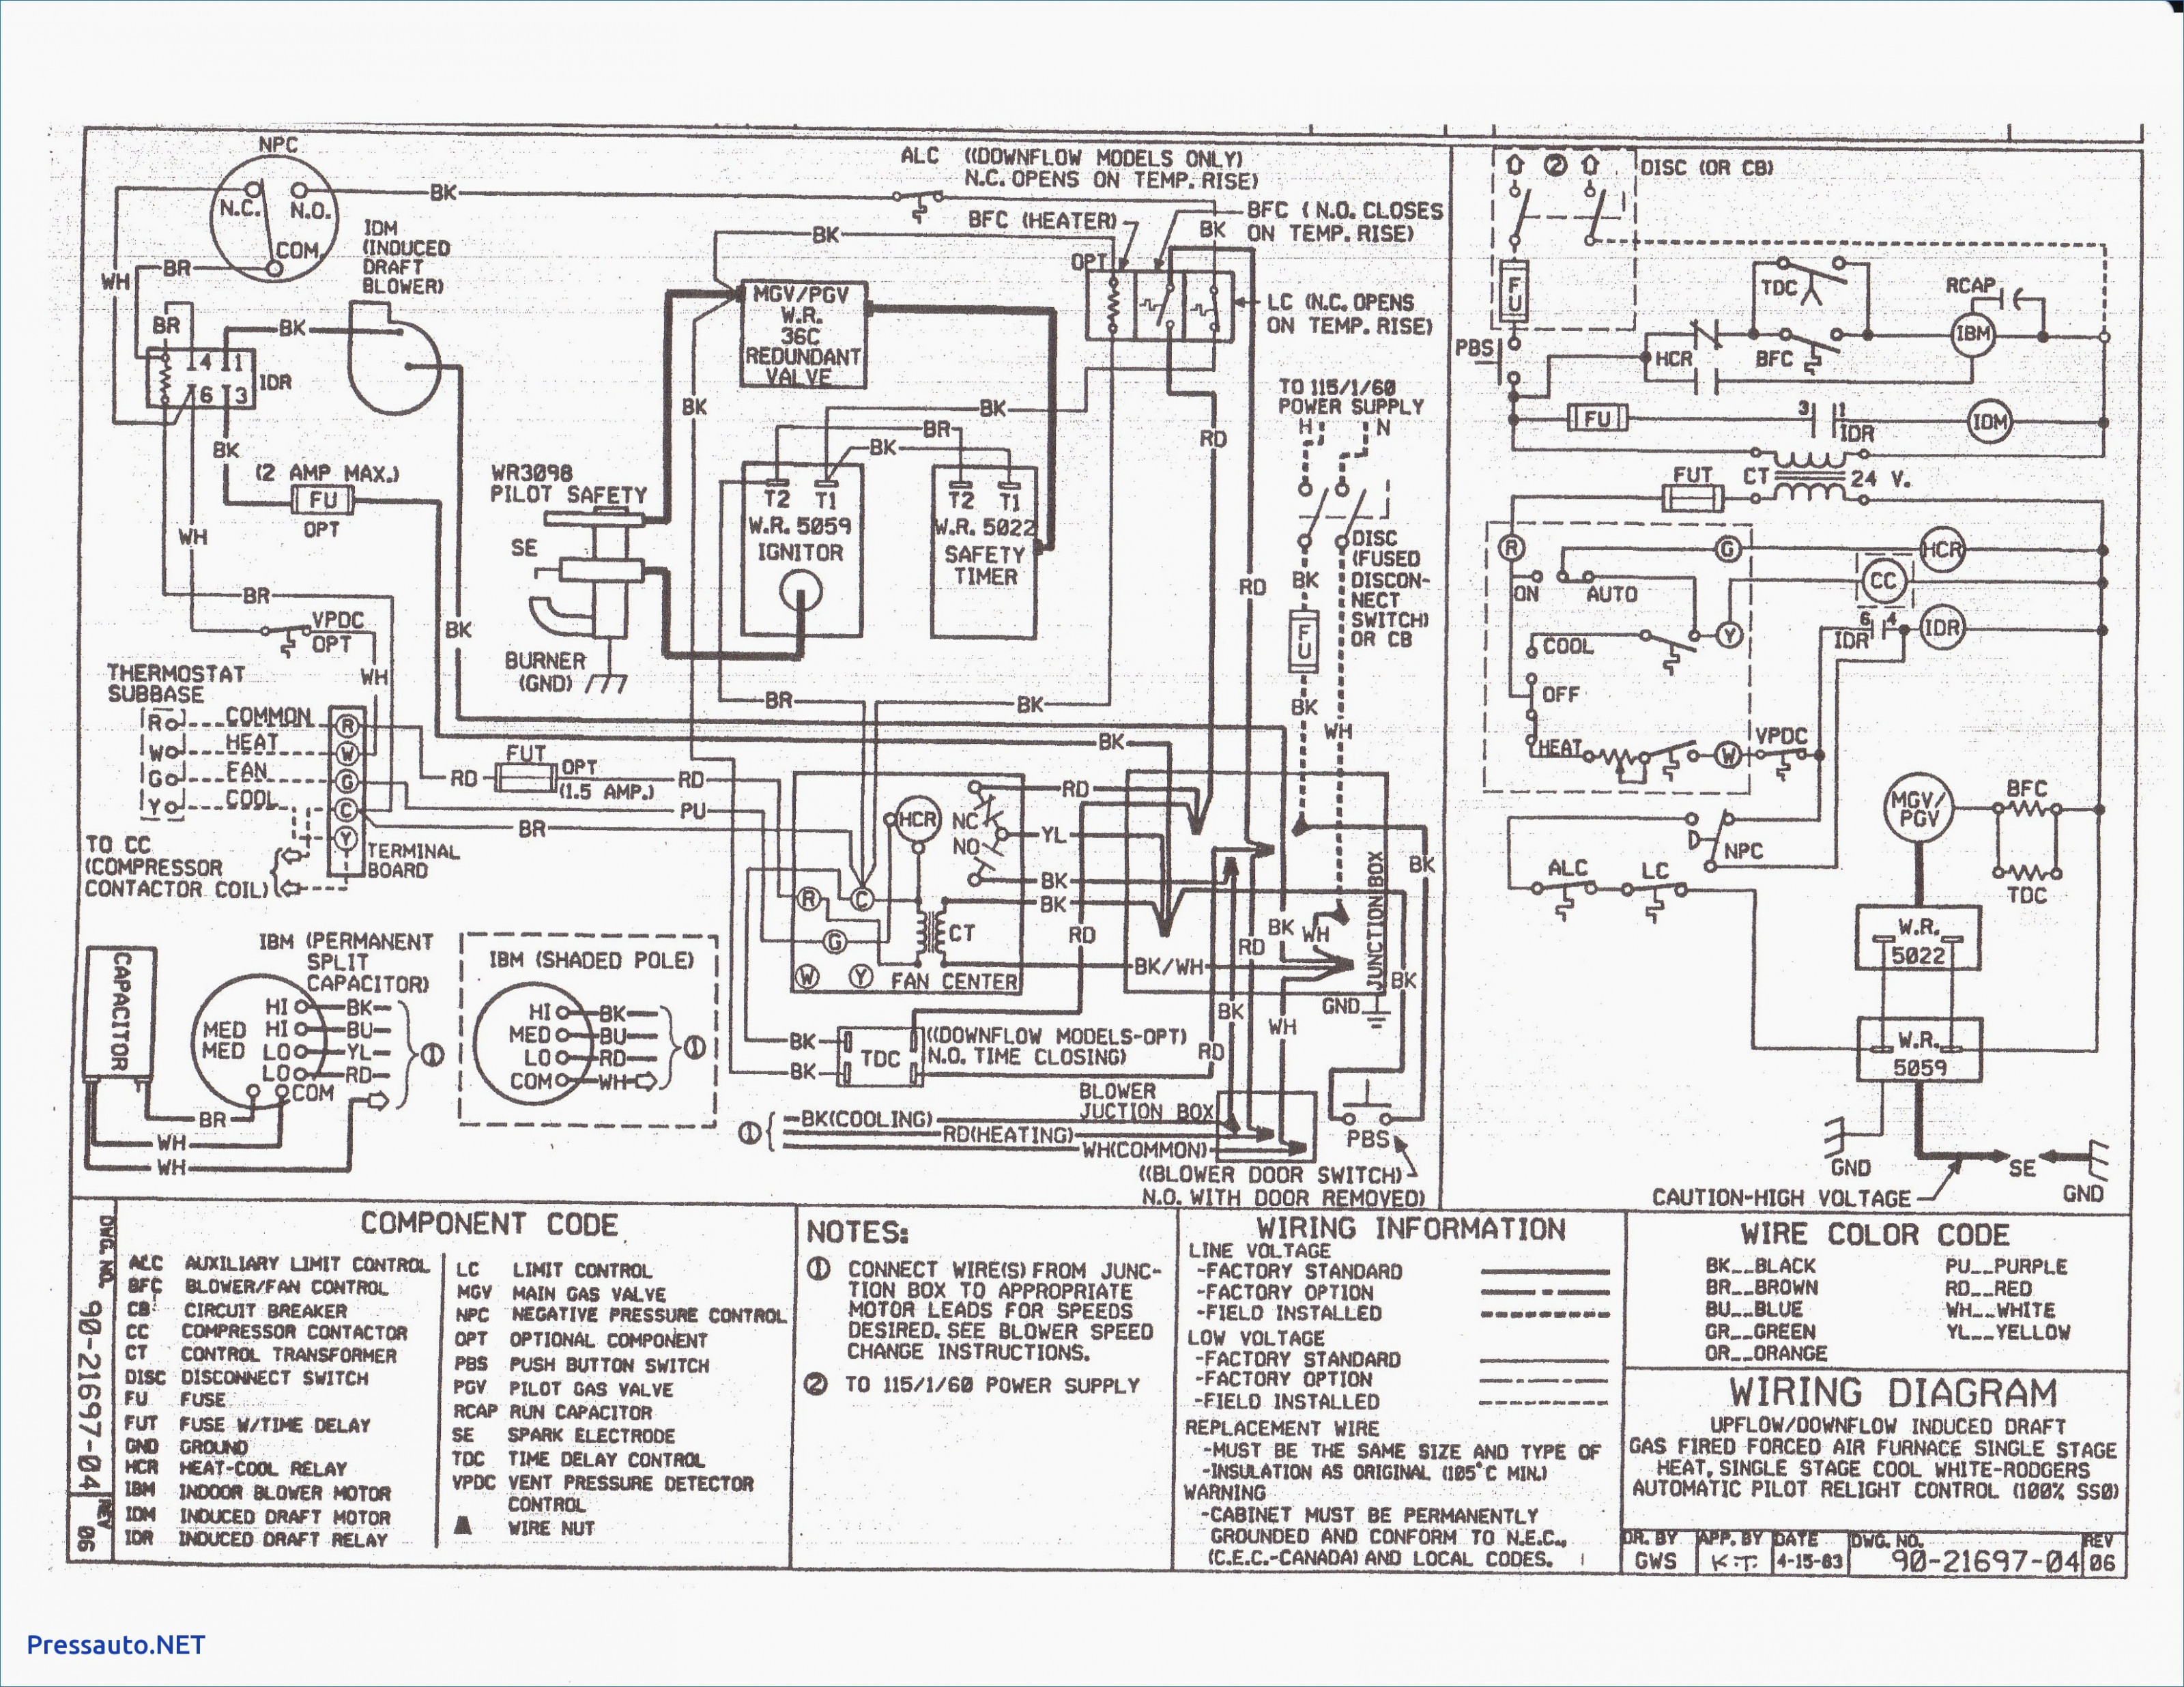 Holland Furnace Wiring Diagram - 93 Rx7 Fuse Box Front | Bege Wiring Diagram | Wiring York Diagrams Furnace N2ahd2oao6c |  | Bege Place Wiring Diagram - Bege Wiring Diagram